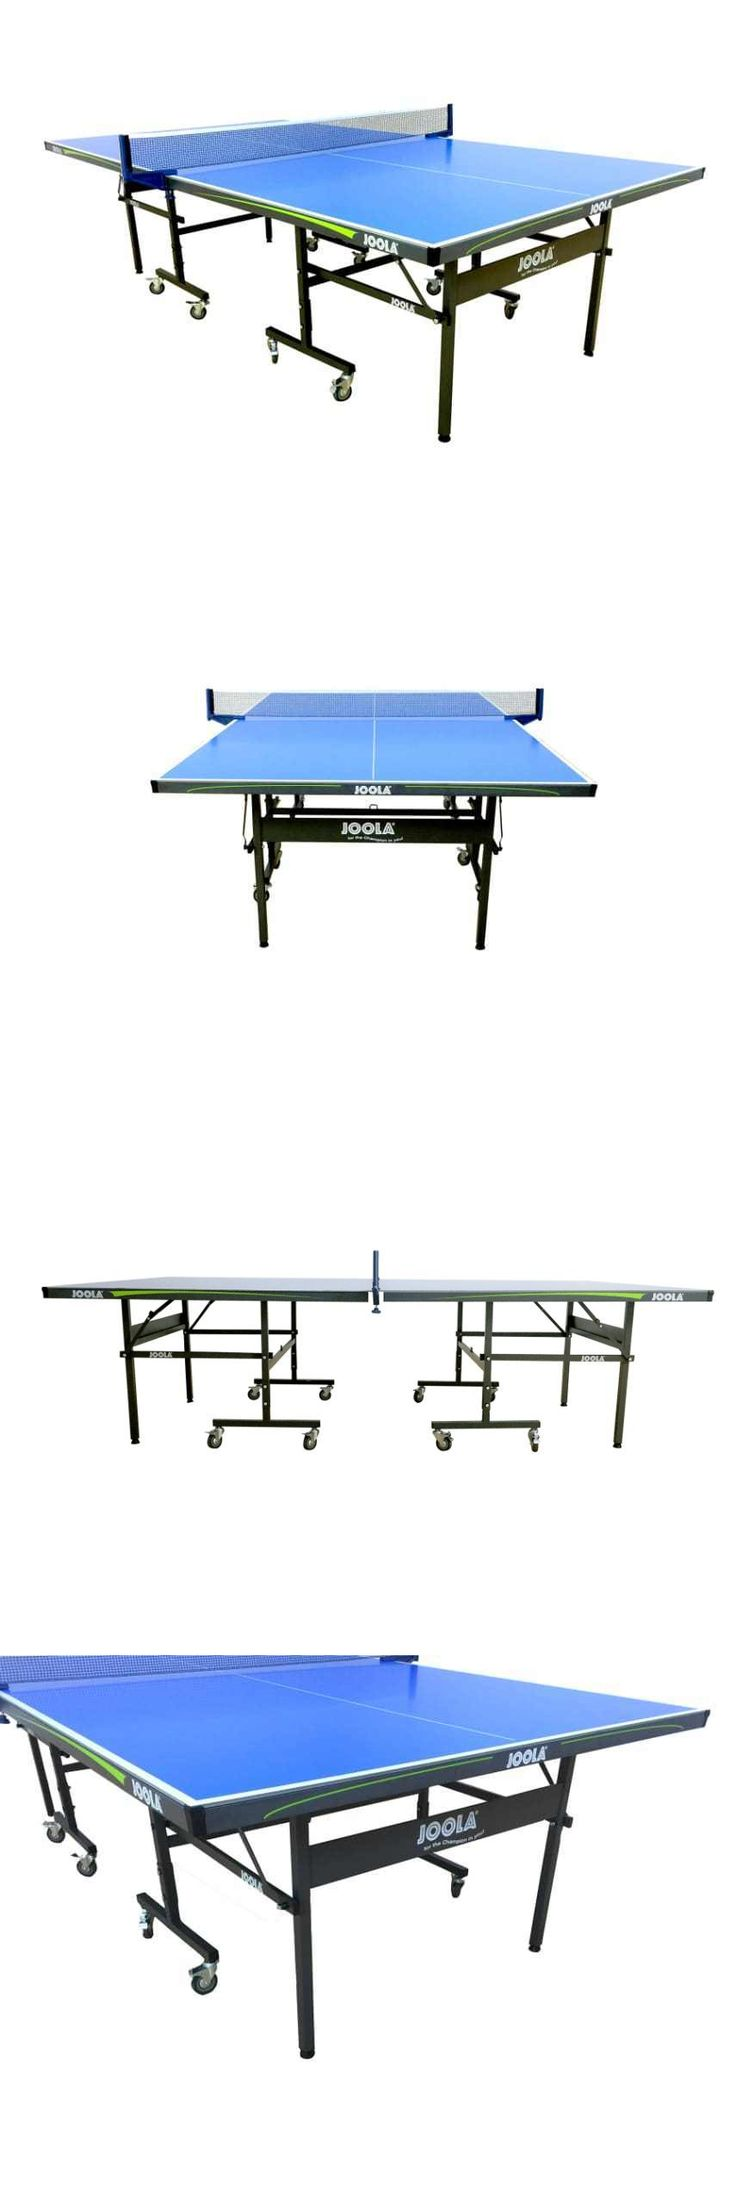 Tables 97075: Outdoor Table Tennis Table Aluminum Plastic Adjustable Level Sport Game Wheeled -> BUY IT NOW ONLY: $699.99 on eBay!